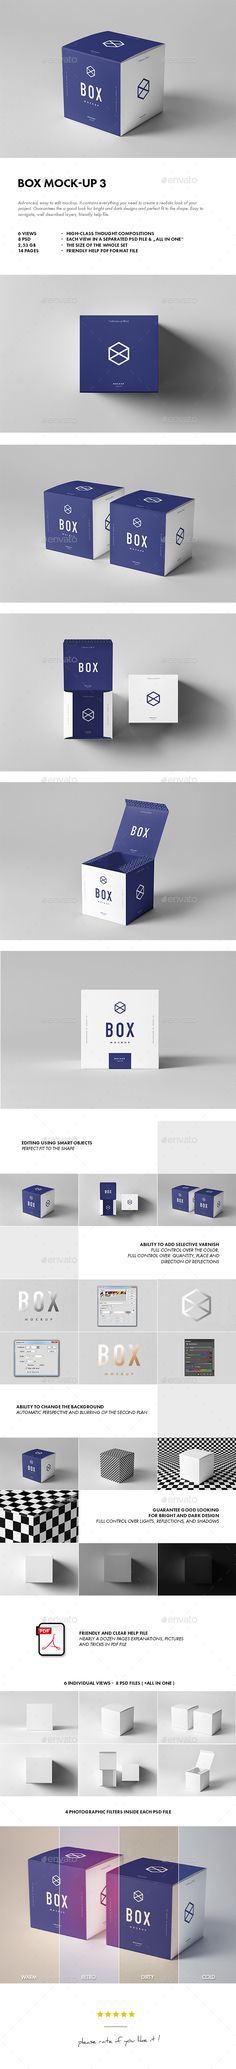 Box Mockup 3 — Photoshop PSD #decoration #groats • Available here → https://graphicriver.net/item/box-mockup-3/18763049?ref=pxcr